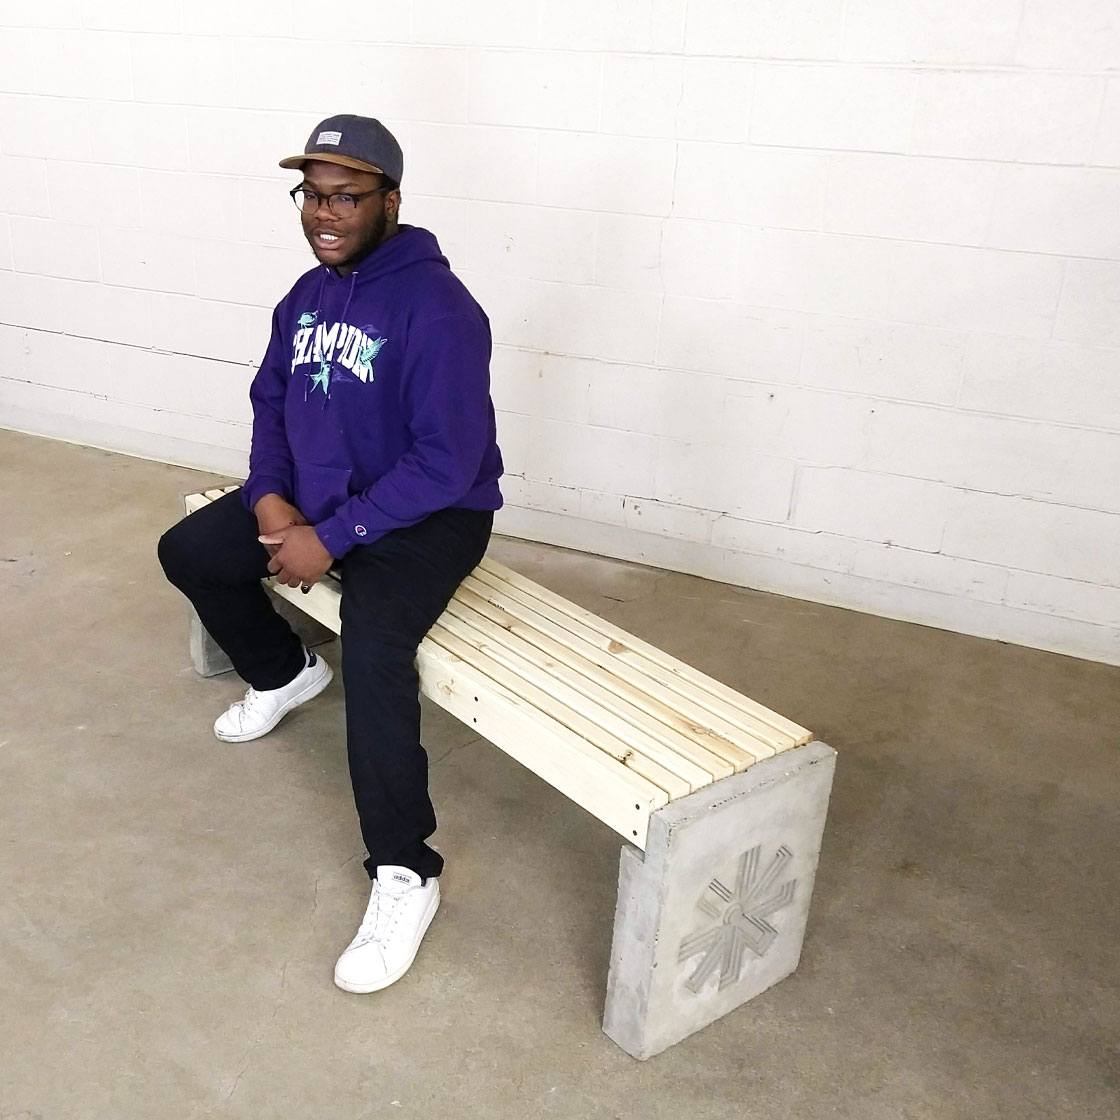 A wooden, concrete, and steel bench designed by Enviro apprentices